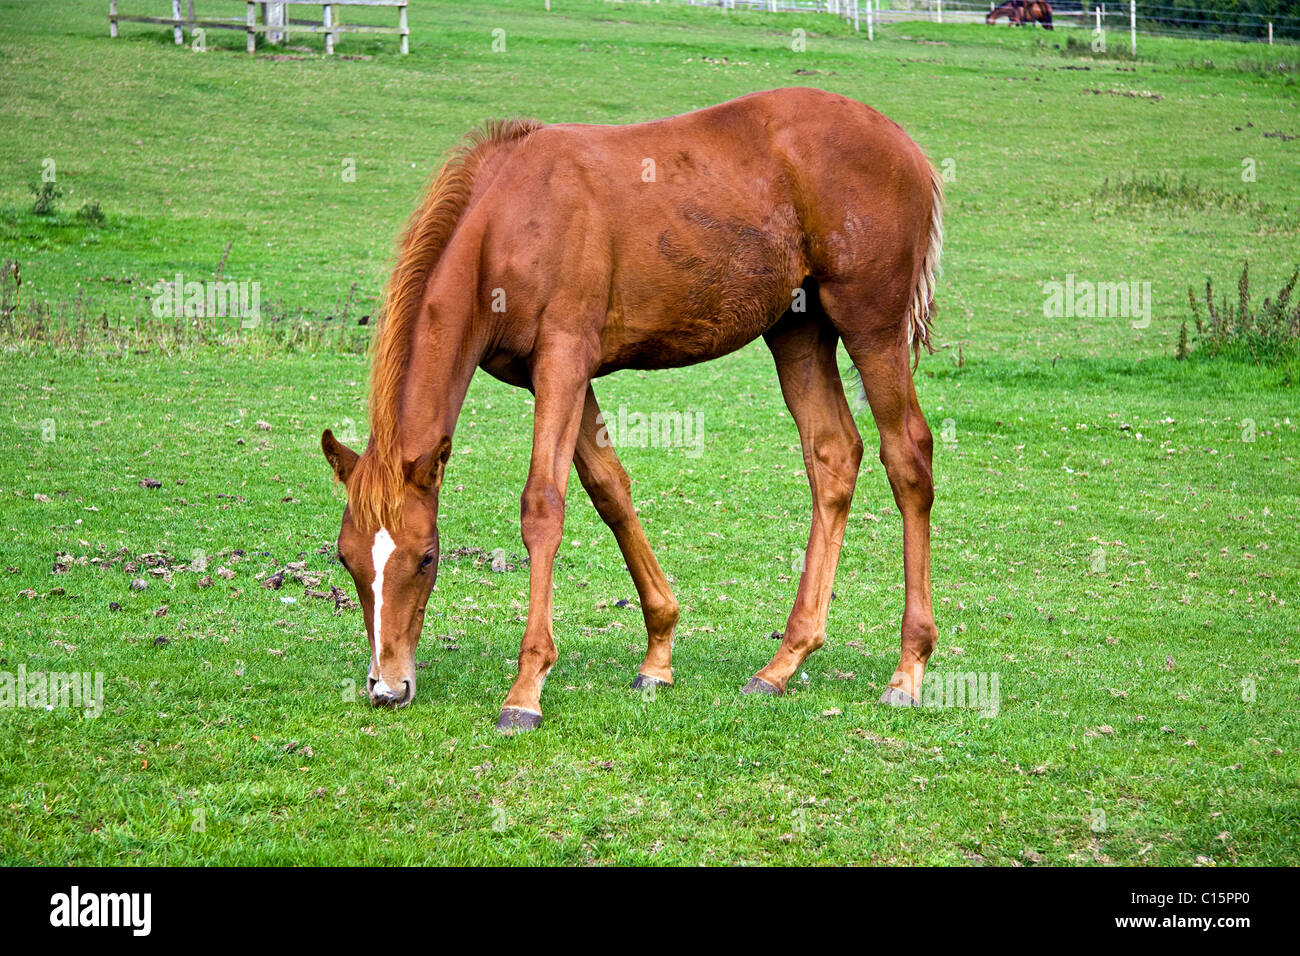 Chestnut Foal grazing in paddock - Stock Image